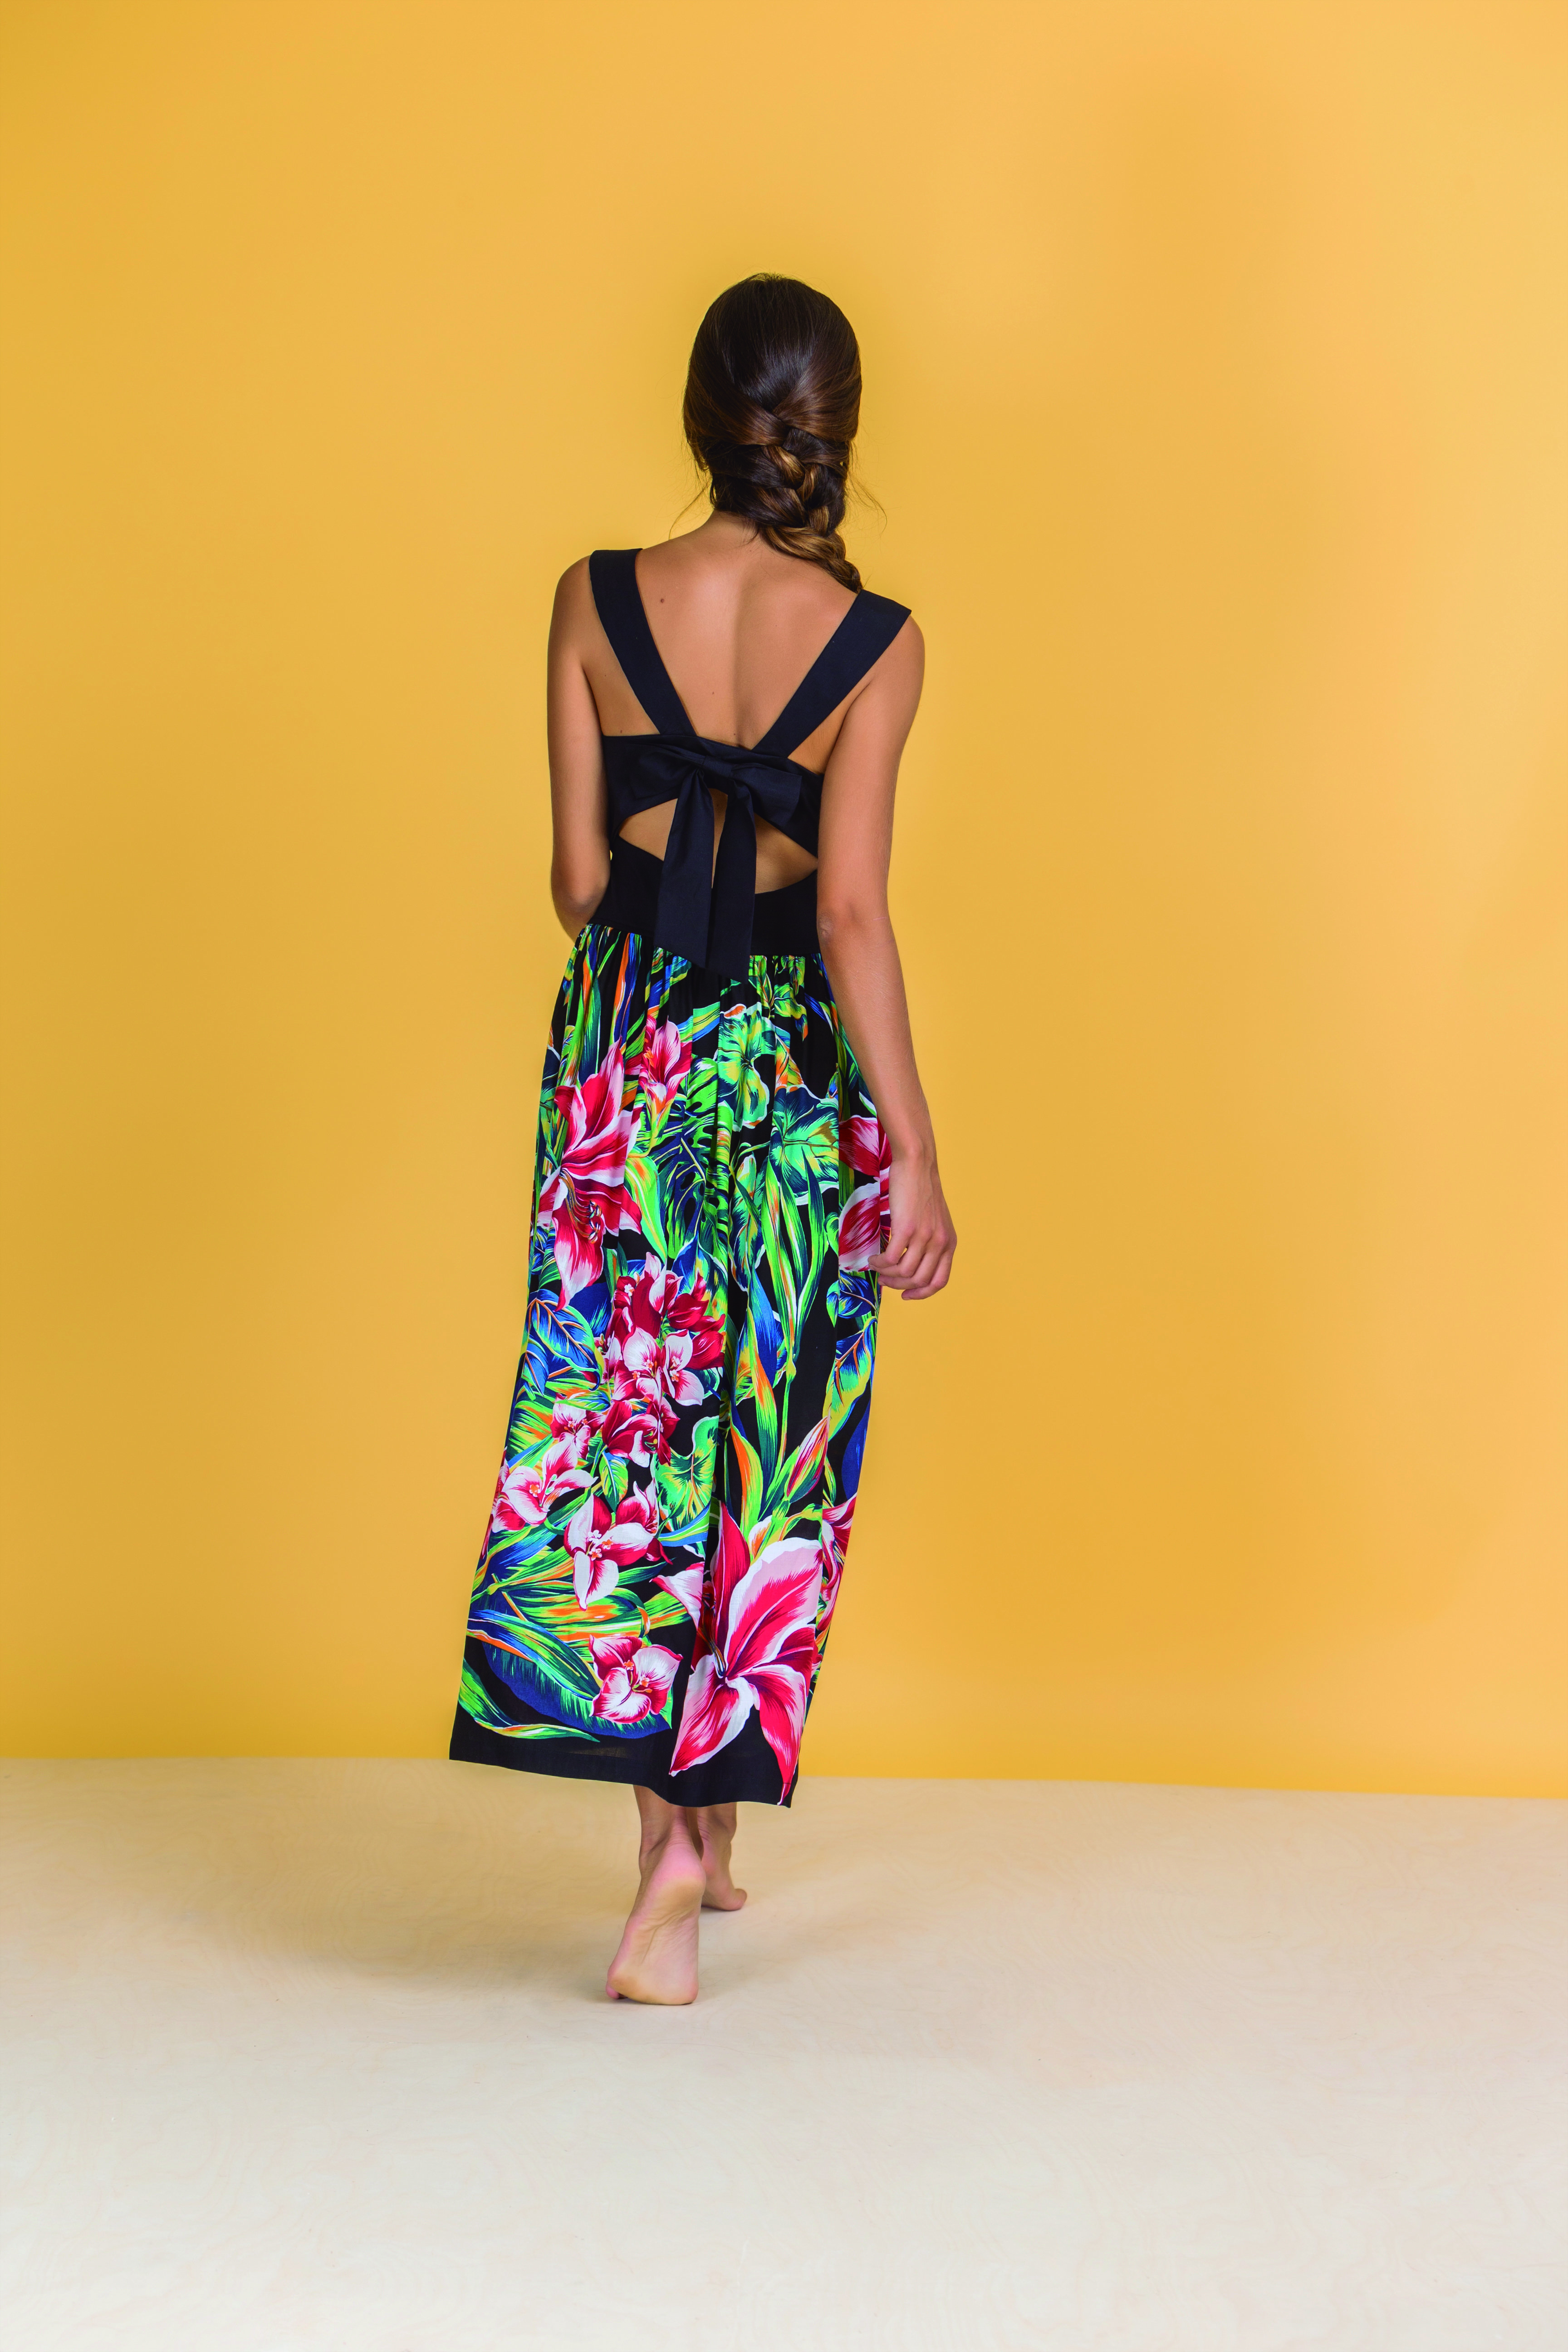 Paul Brial: Pleated Bow Back Cutout Maxi Dress (Few Left, Comes in Black & White!)